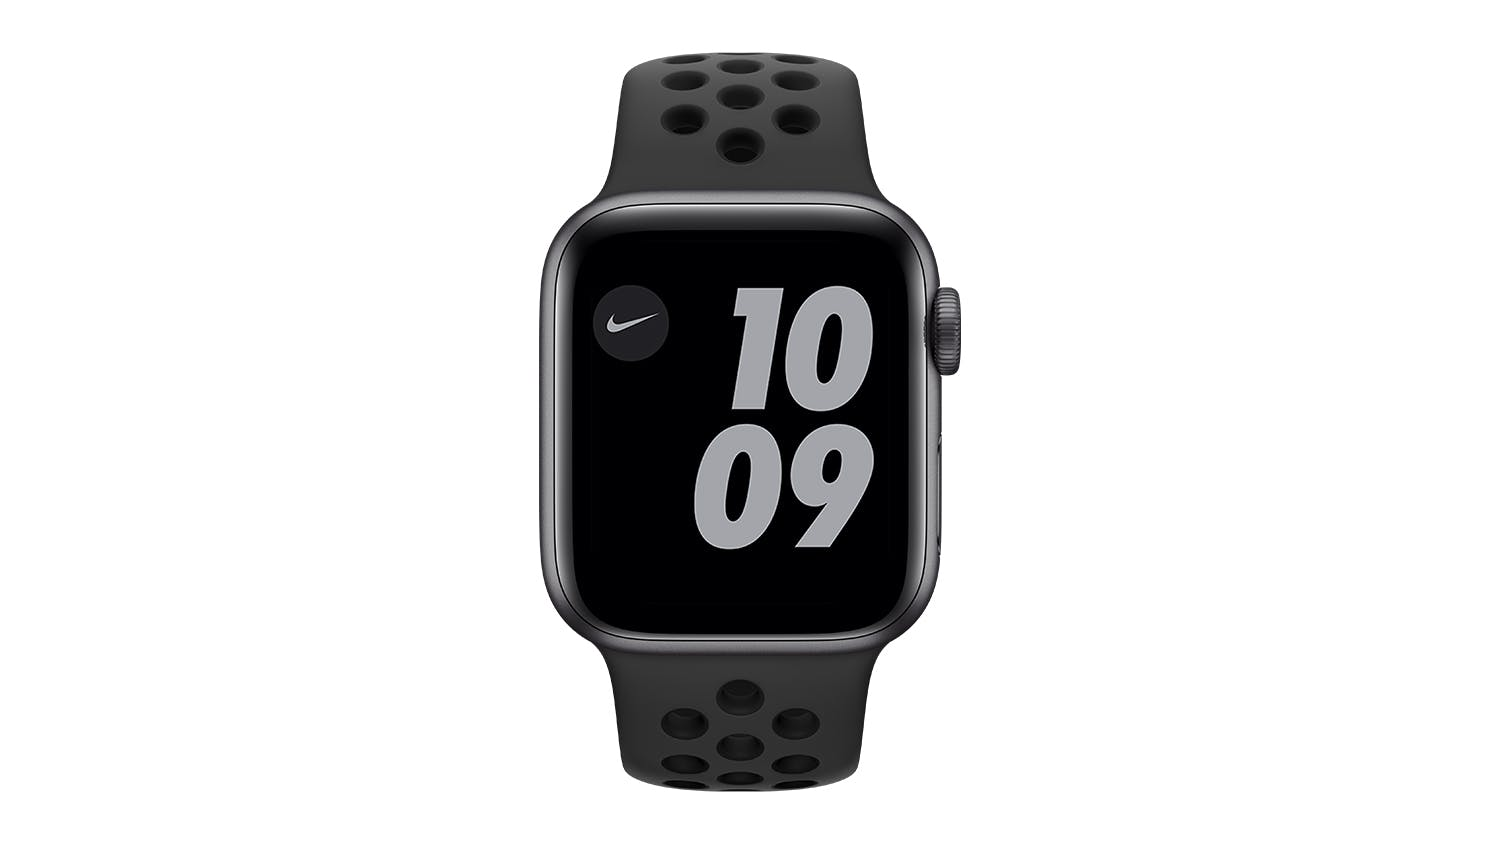 Apple Watch Nike Series 6 (GPS+Cellular) 40mm Space Grey Aluminium Case with Anthracite/Black Nike Sport Band